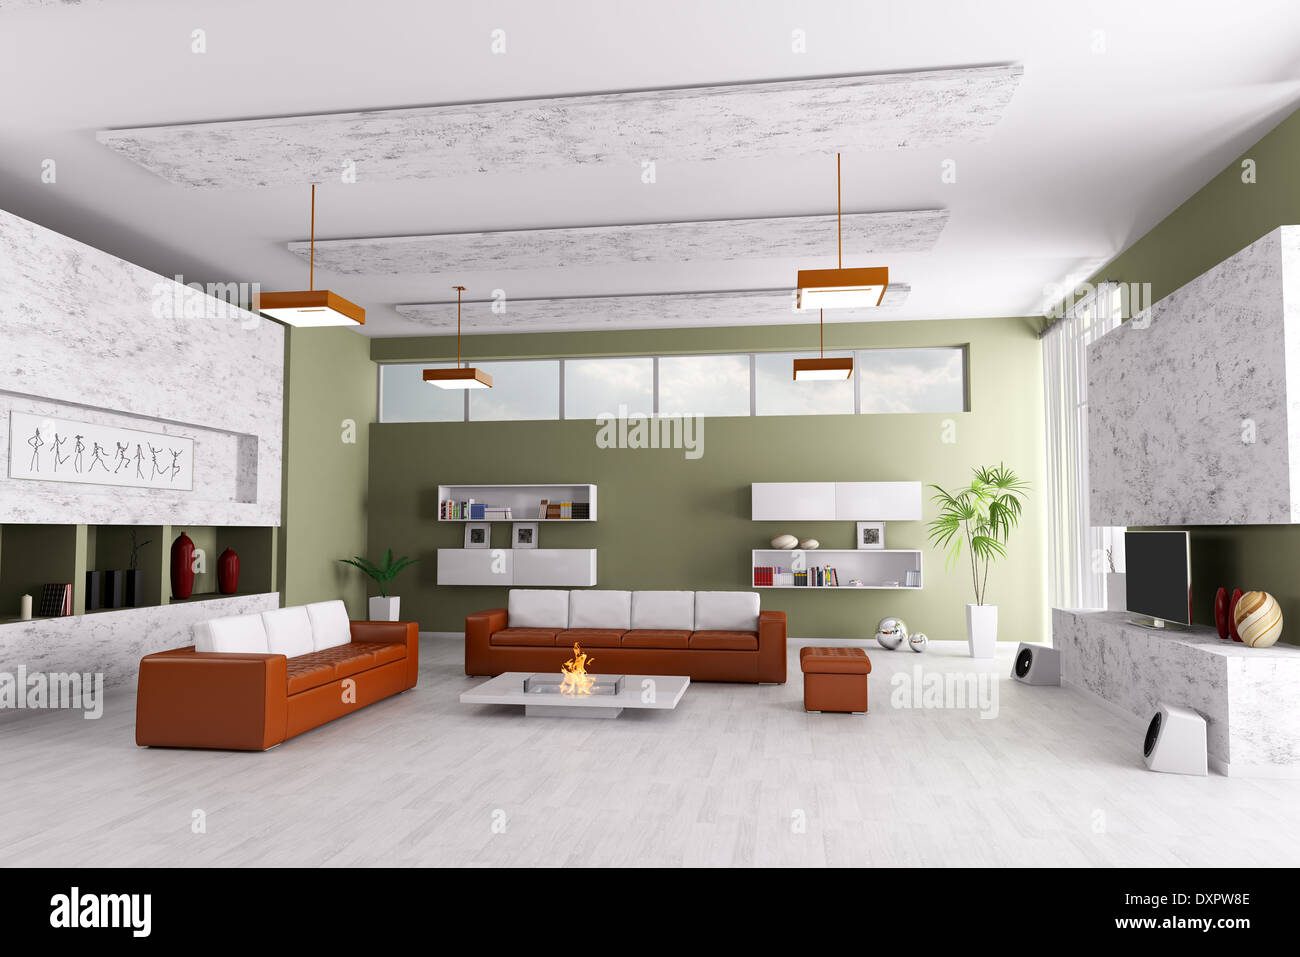 Tremendous Interior Of Modern Living Room With Two Sofas And Fireplace Dailytribune Chair Design For Home Dailytribuneorg